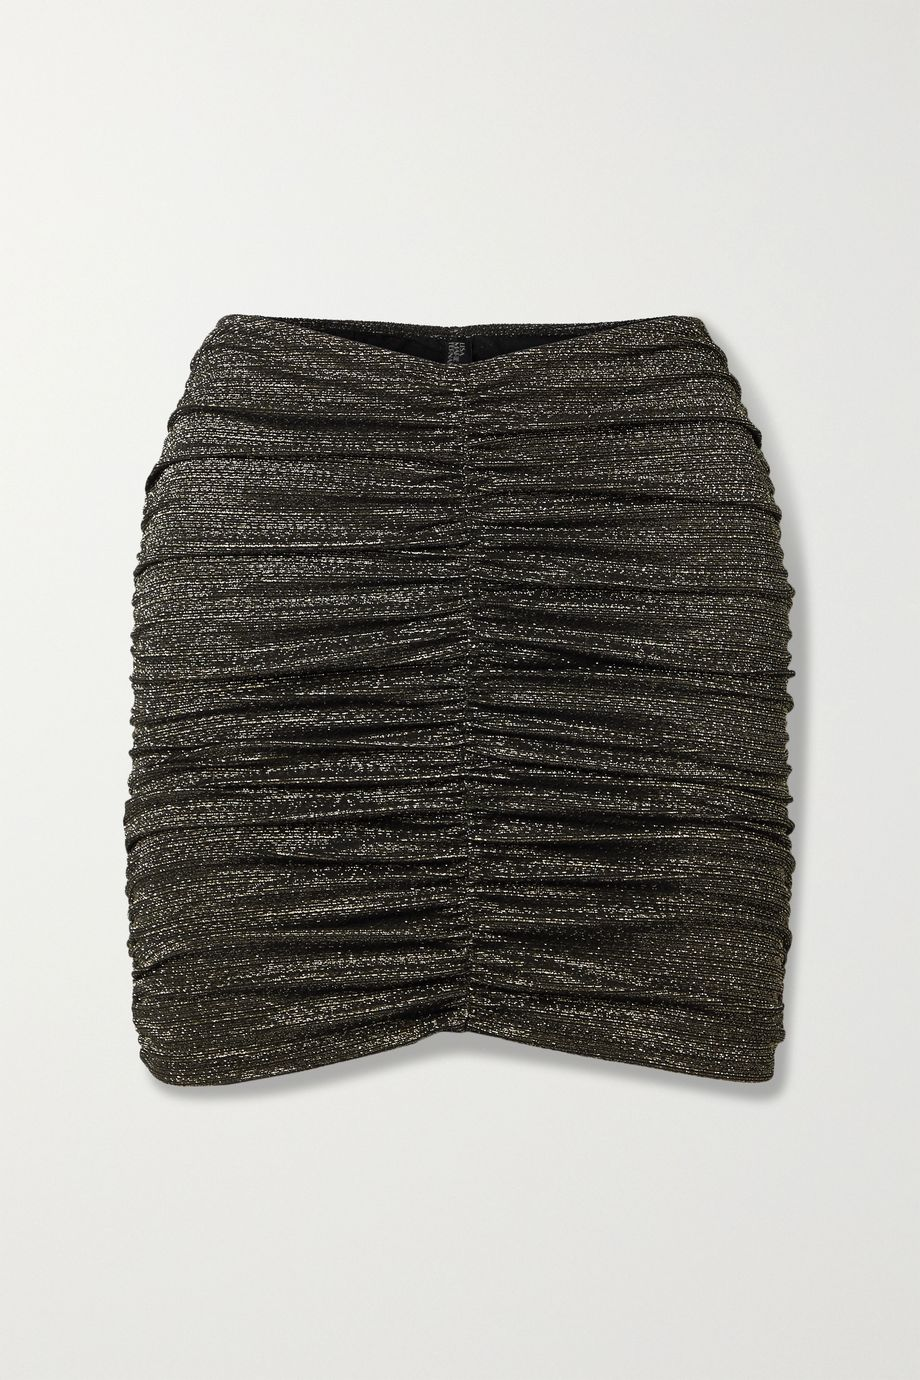 Lisa Marie Fernandez + NET SUSTAIN ruched metallic swim skirt